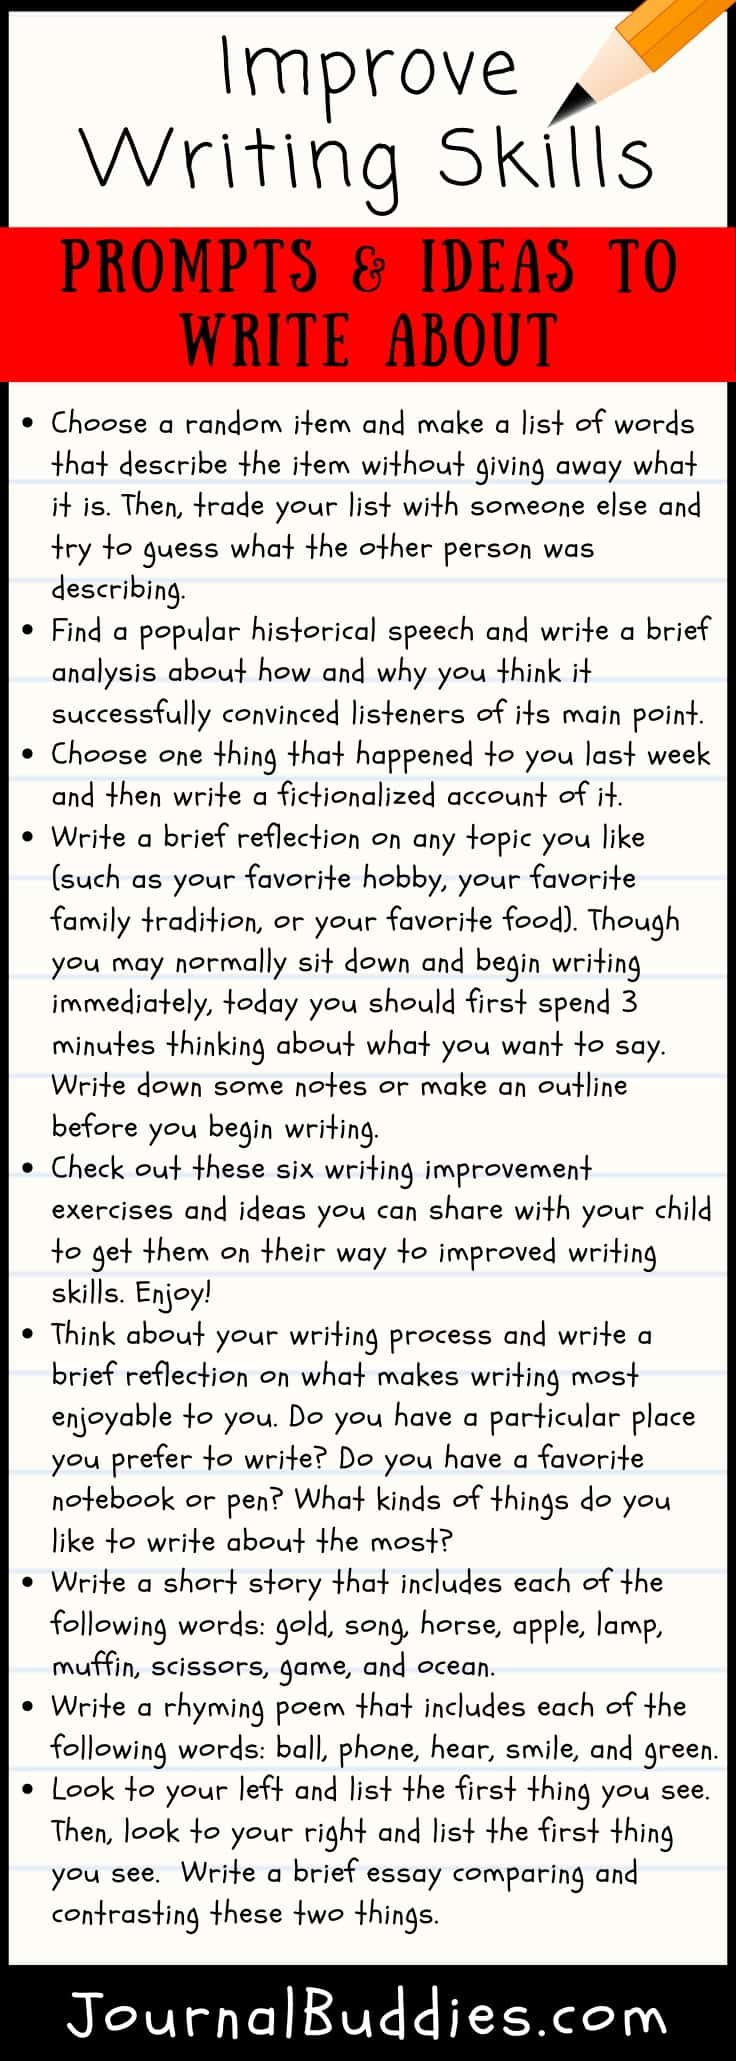 Writing Prompts to Improve Writing Skills